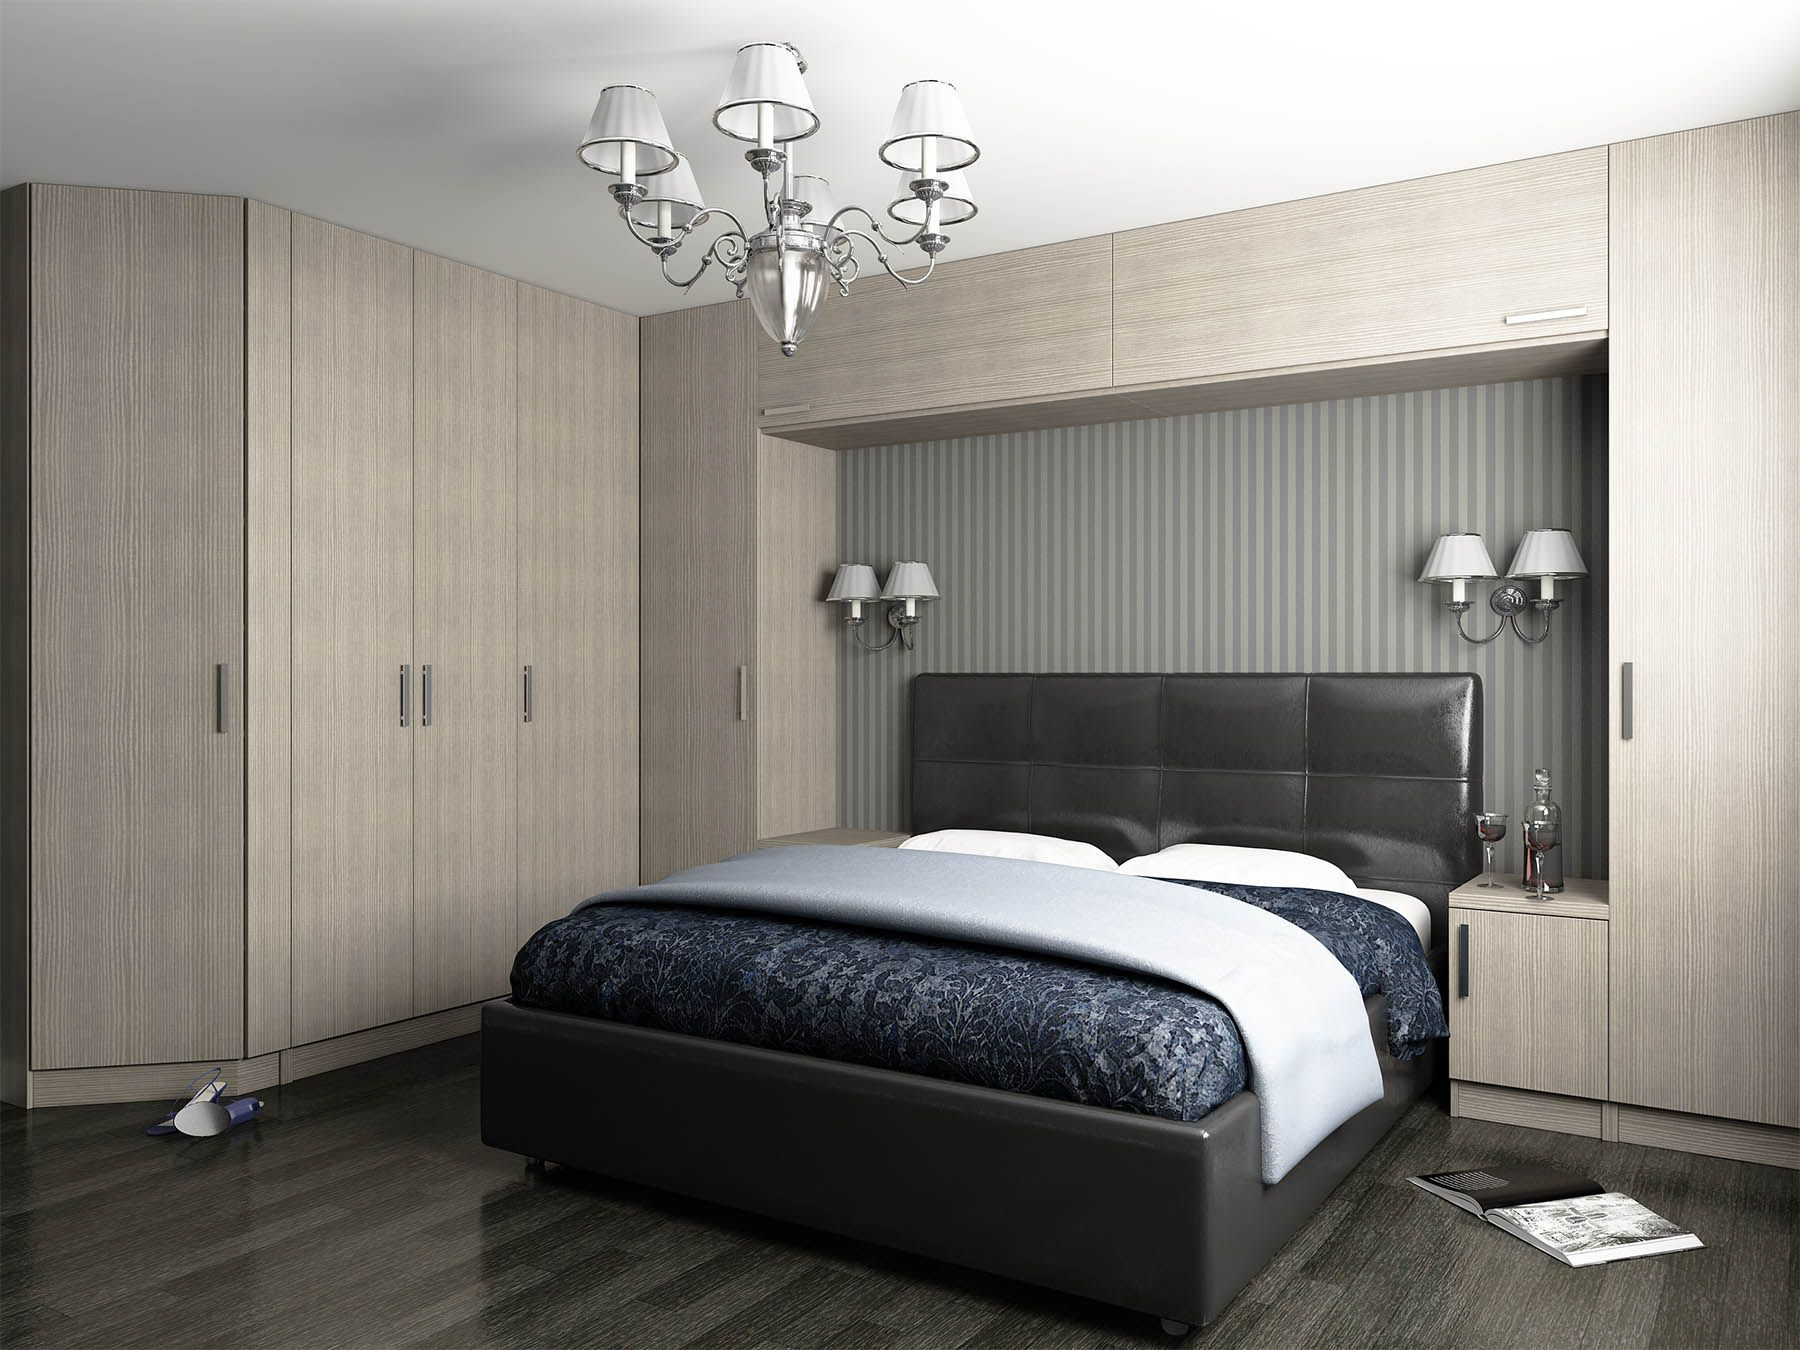 bedrooms built design today fitted home modern furniturefitted inspiration bedroom more free storage idea just white with small have cupboards than furniture leeds pin and cupboard bespoke best become